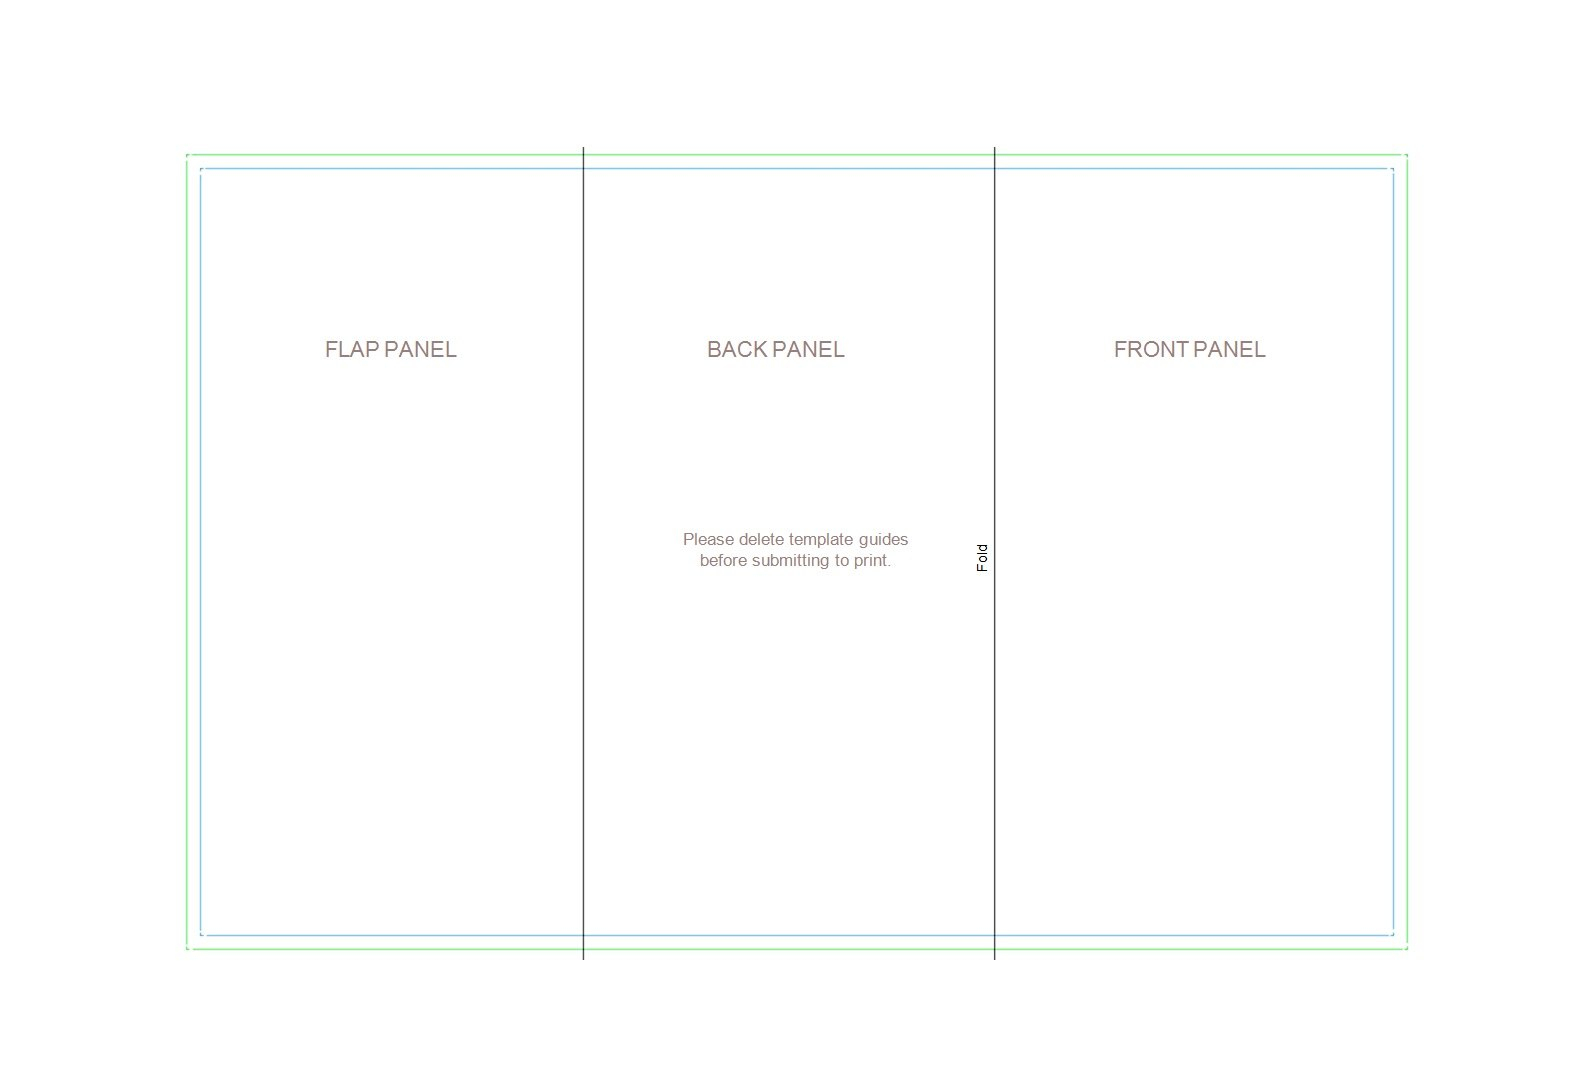 Free Pamphlet Templates Word  Google Docs ᐅ Template Lab With Regard To Brochure Templates For Google Docs